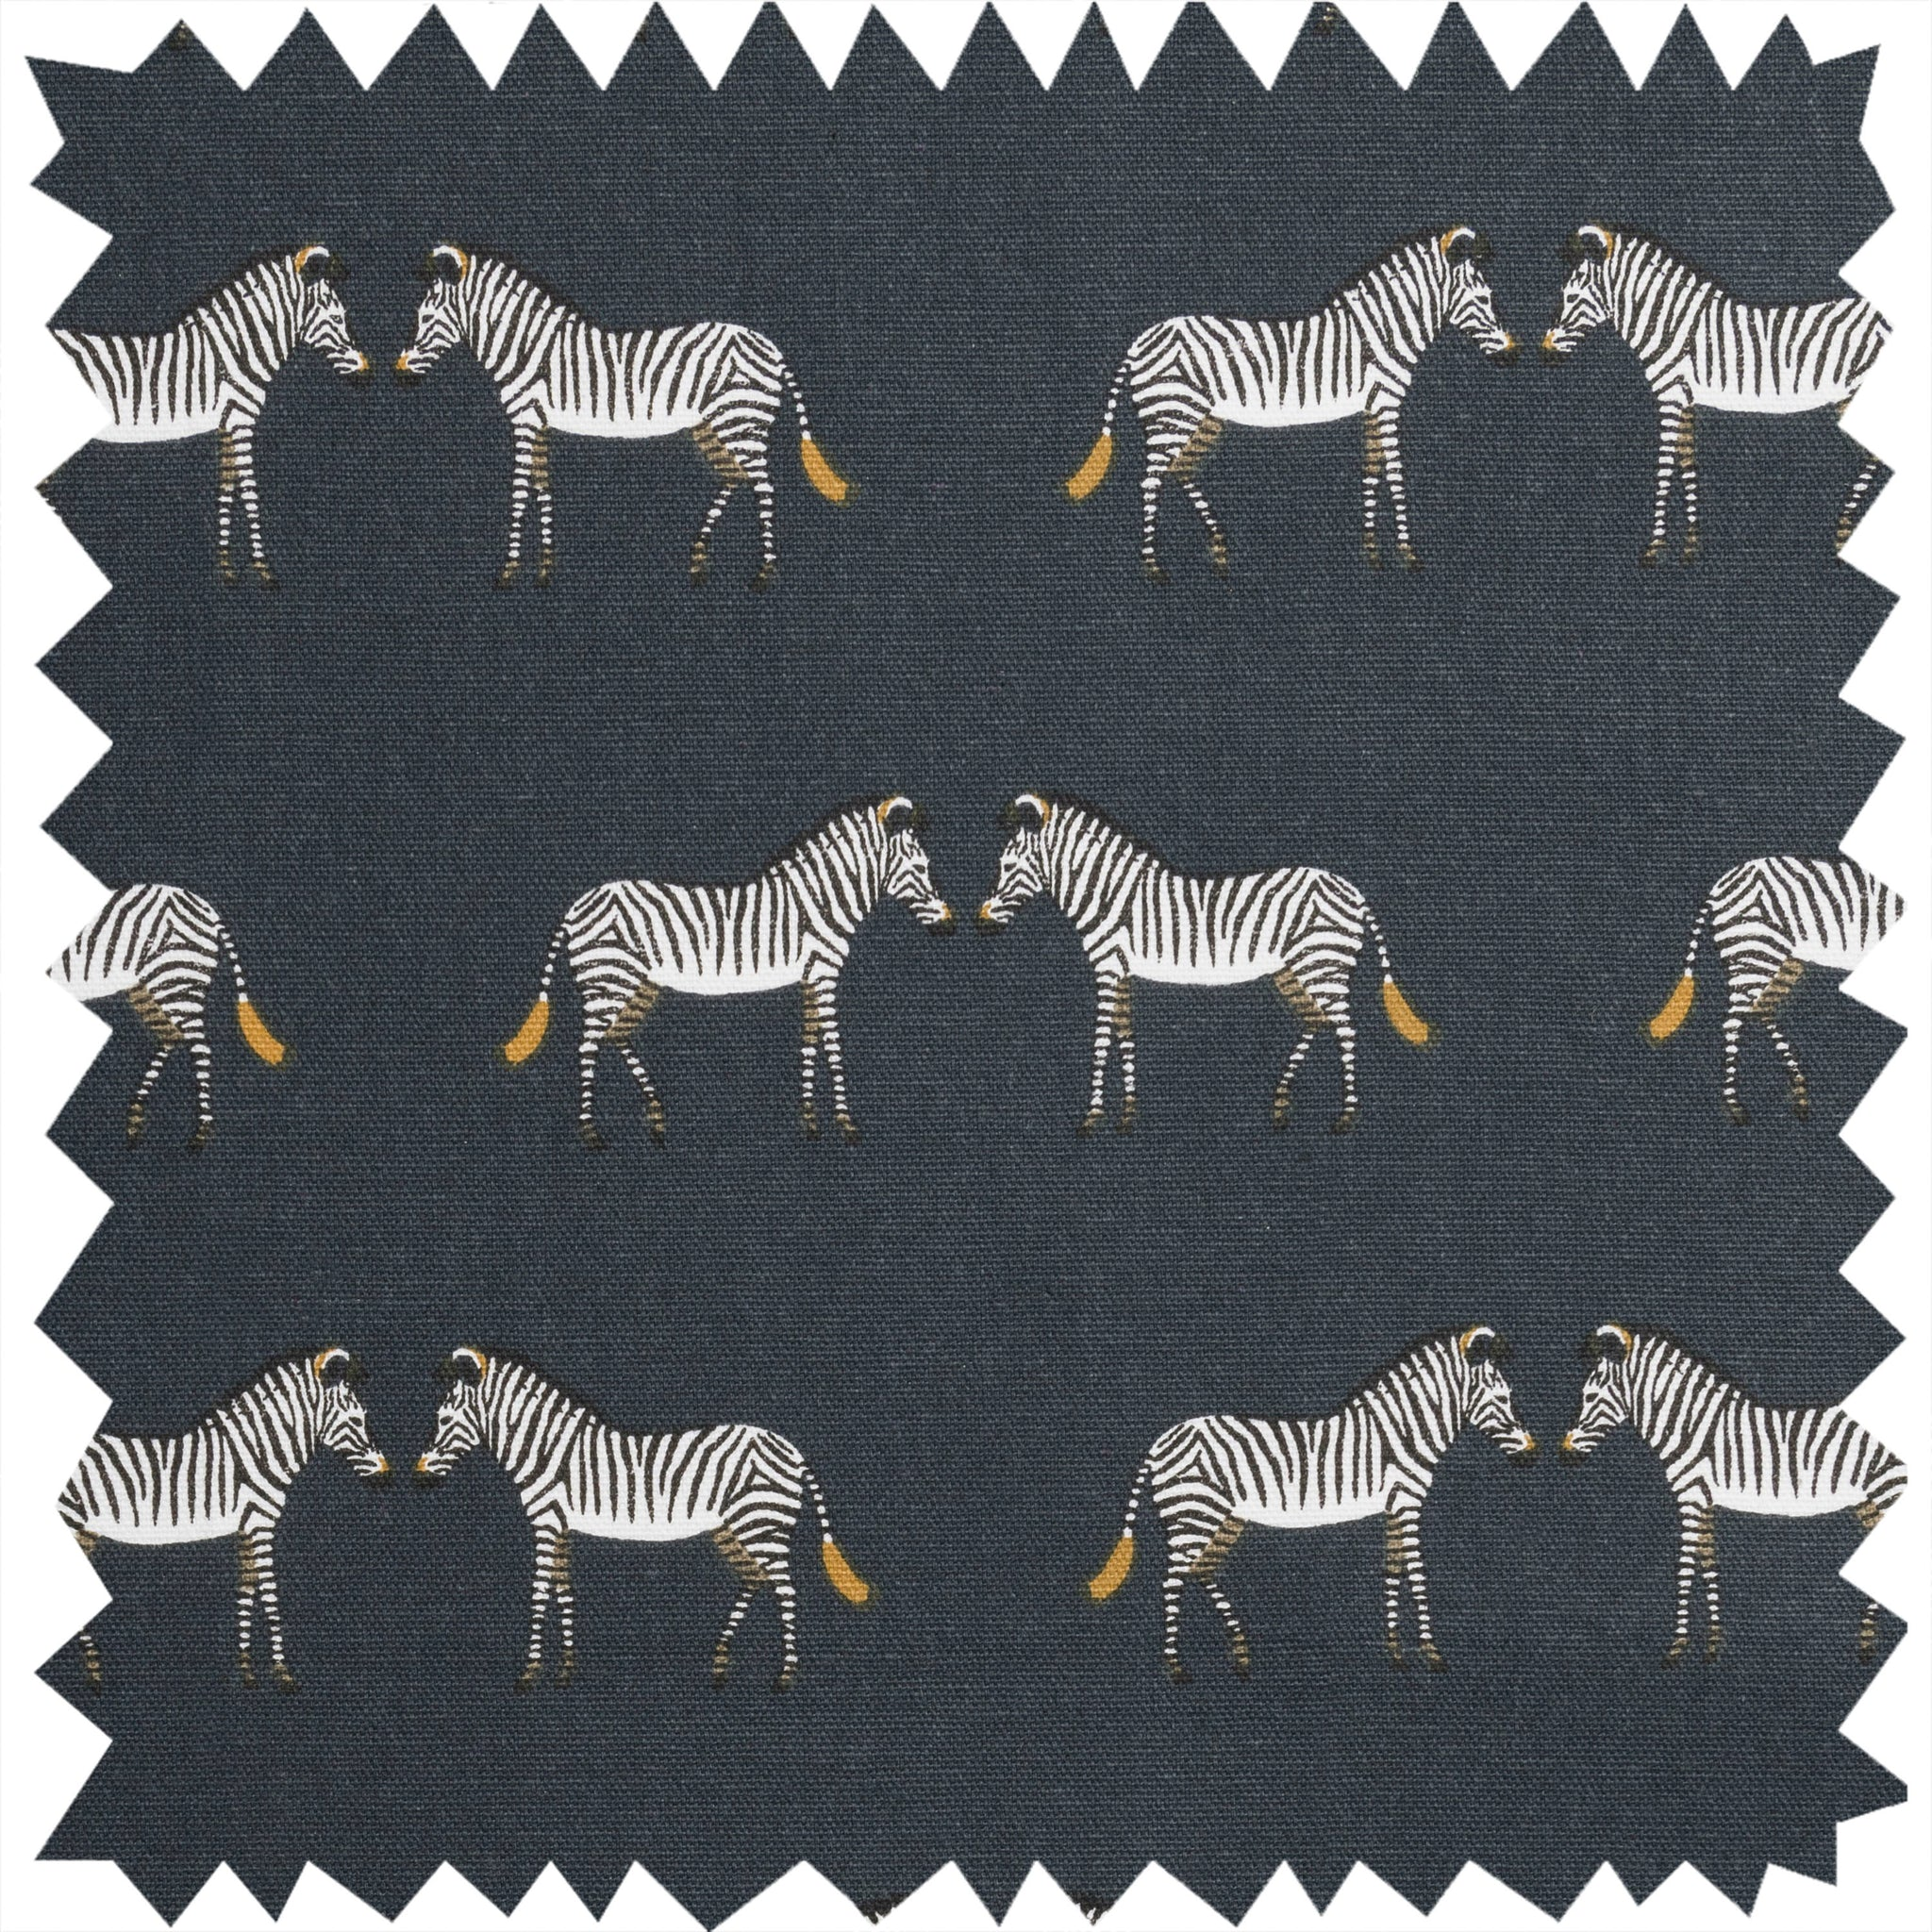 Zebra Fabric by the Metre